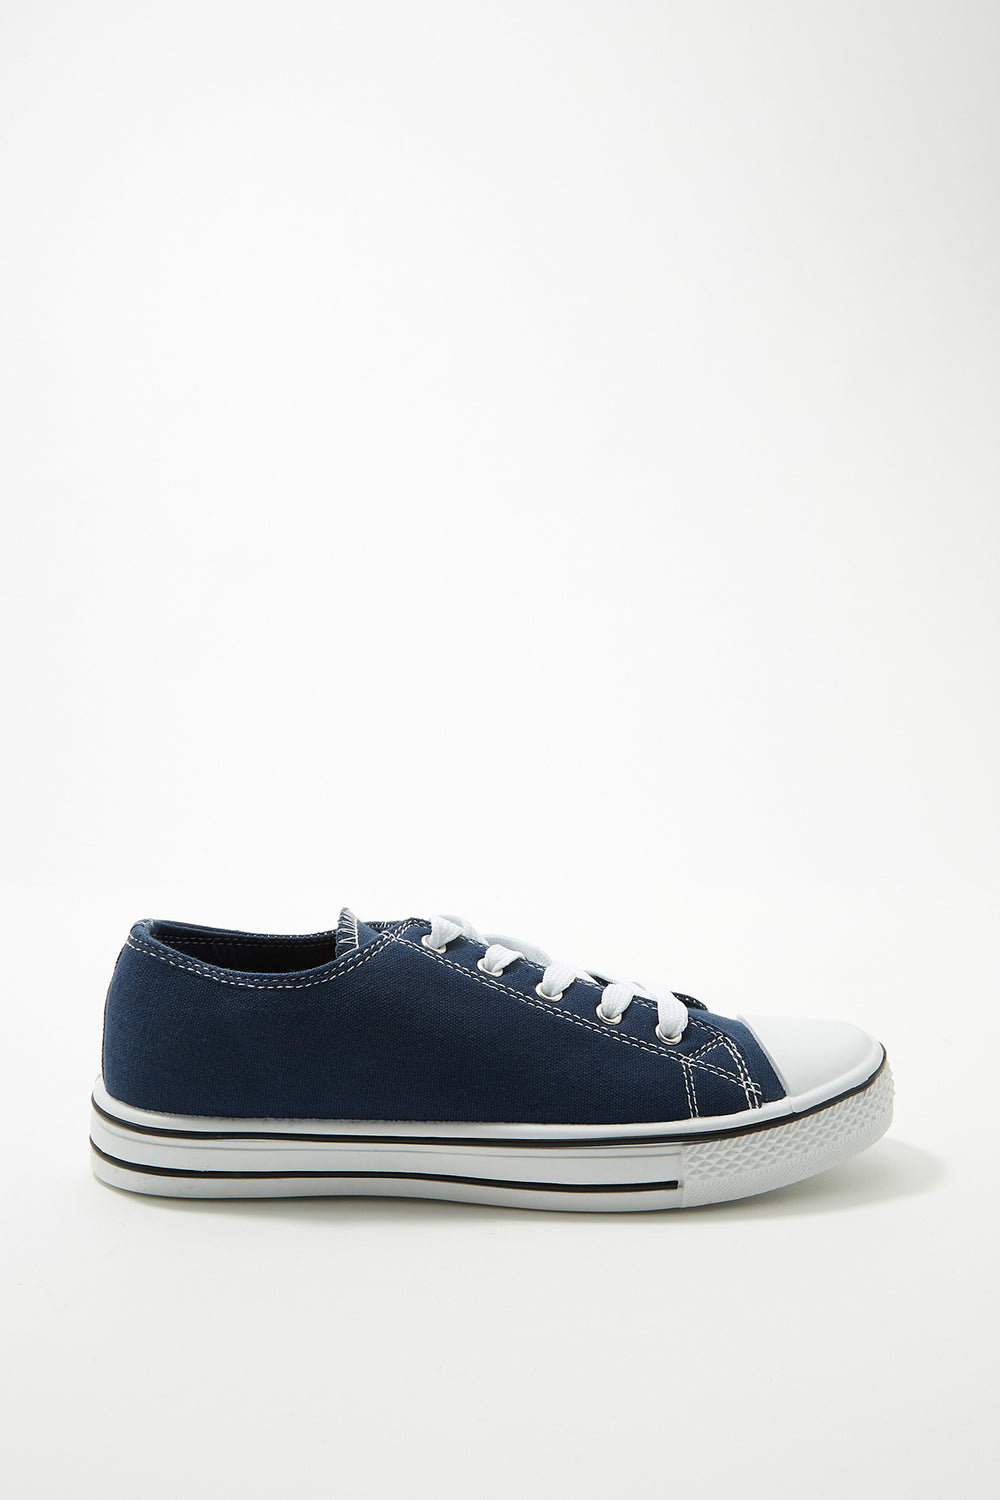 Women Shoes Classic Canvas Lace-Up Sneaker Navy